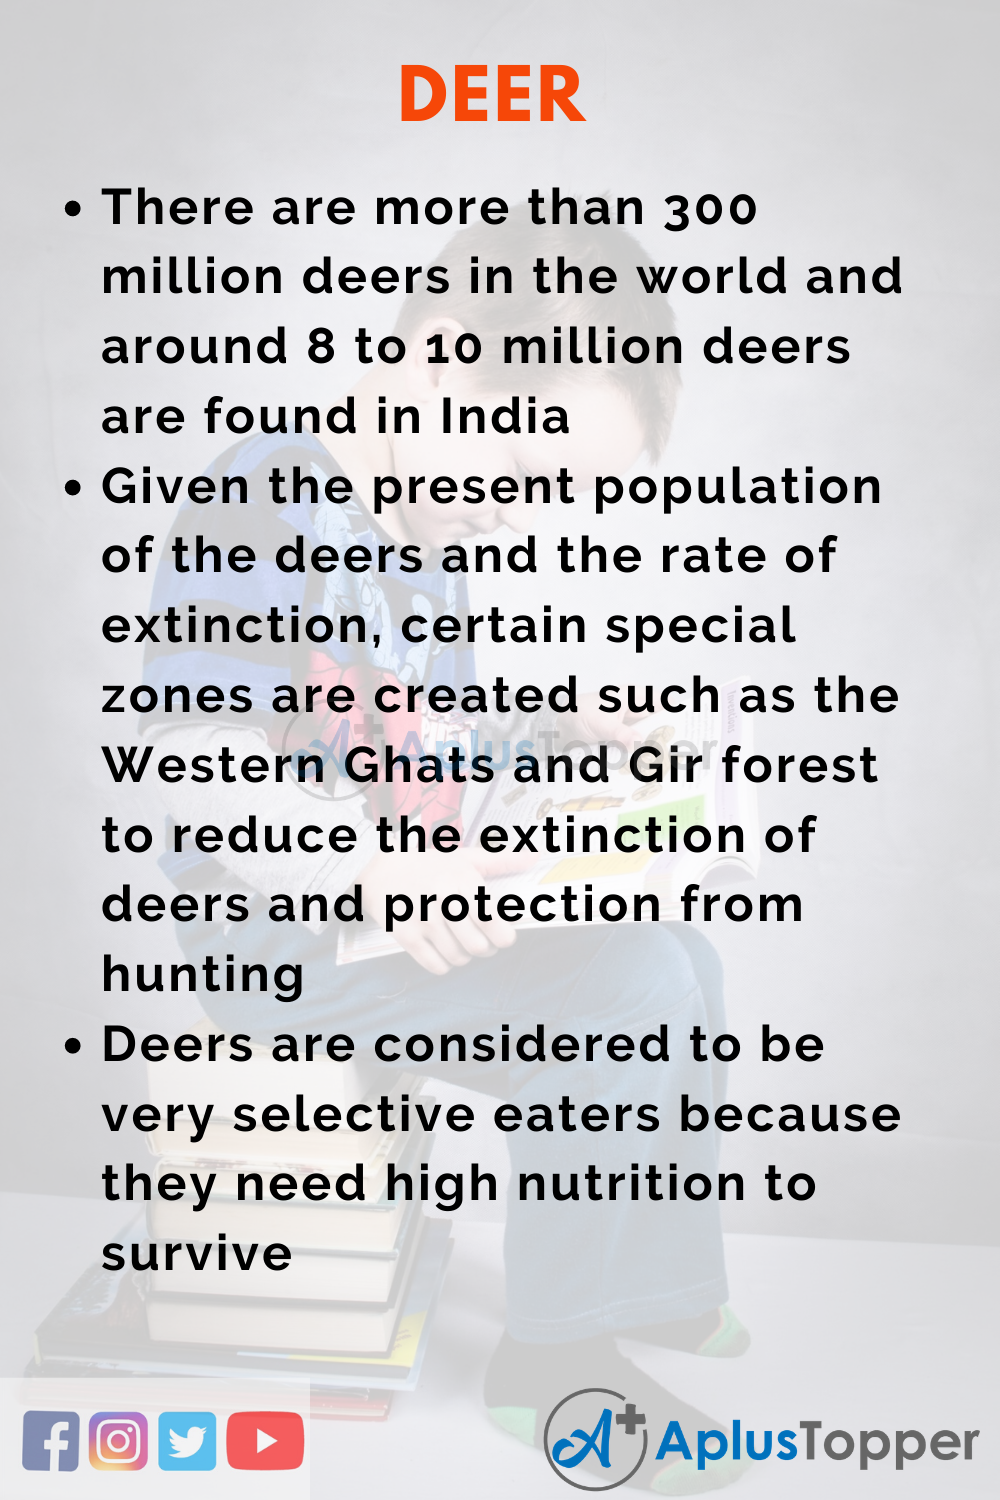 10 Lines on Deer for Higher Class Students